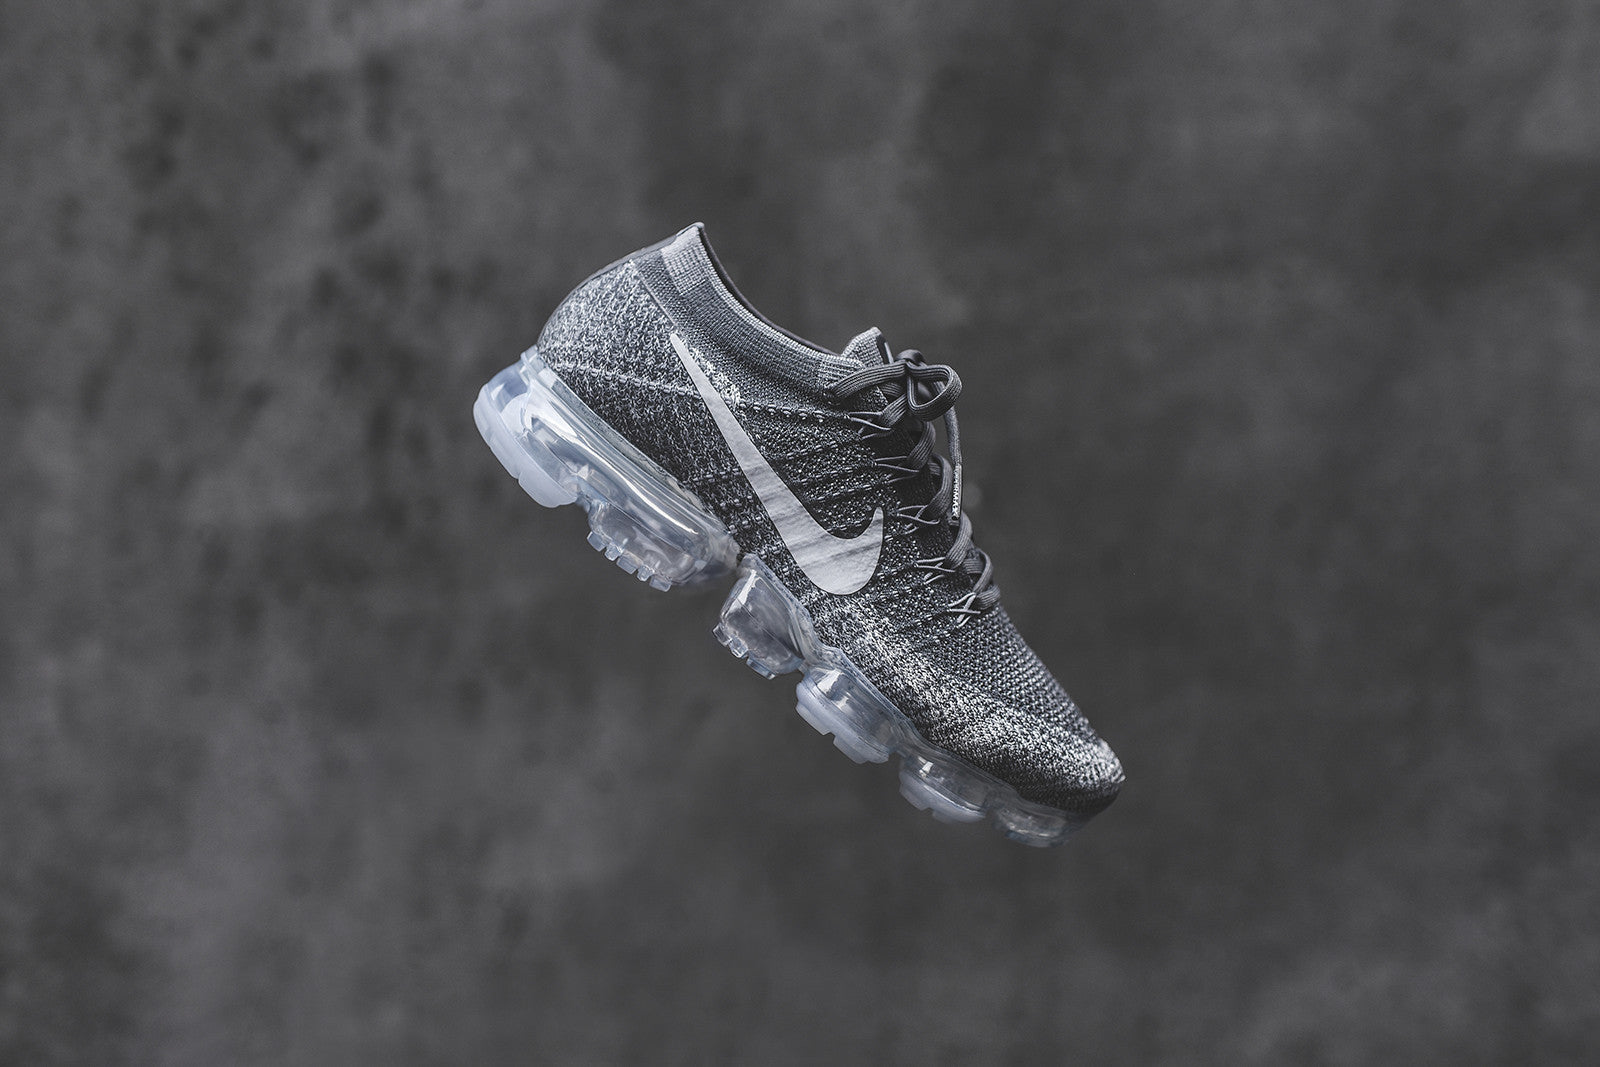 timeless design 4b945 aead9 Nike WMNS Air VaporMax Flyknit - Dark Grey / Black / Wolf ...